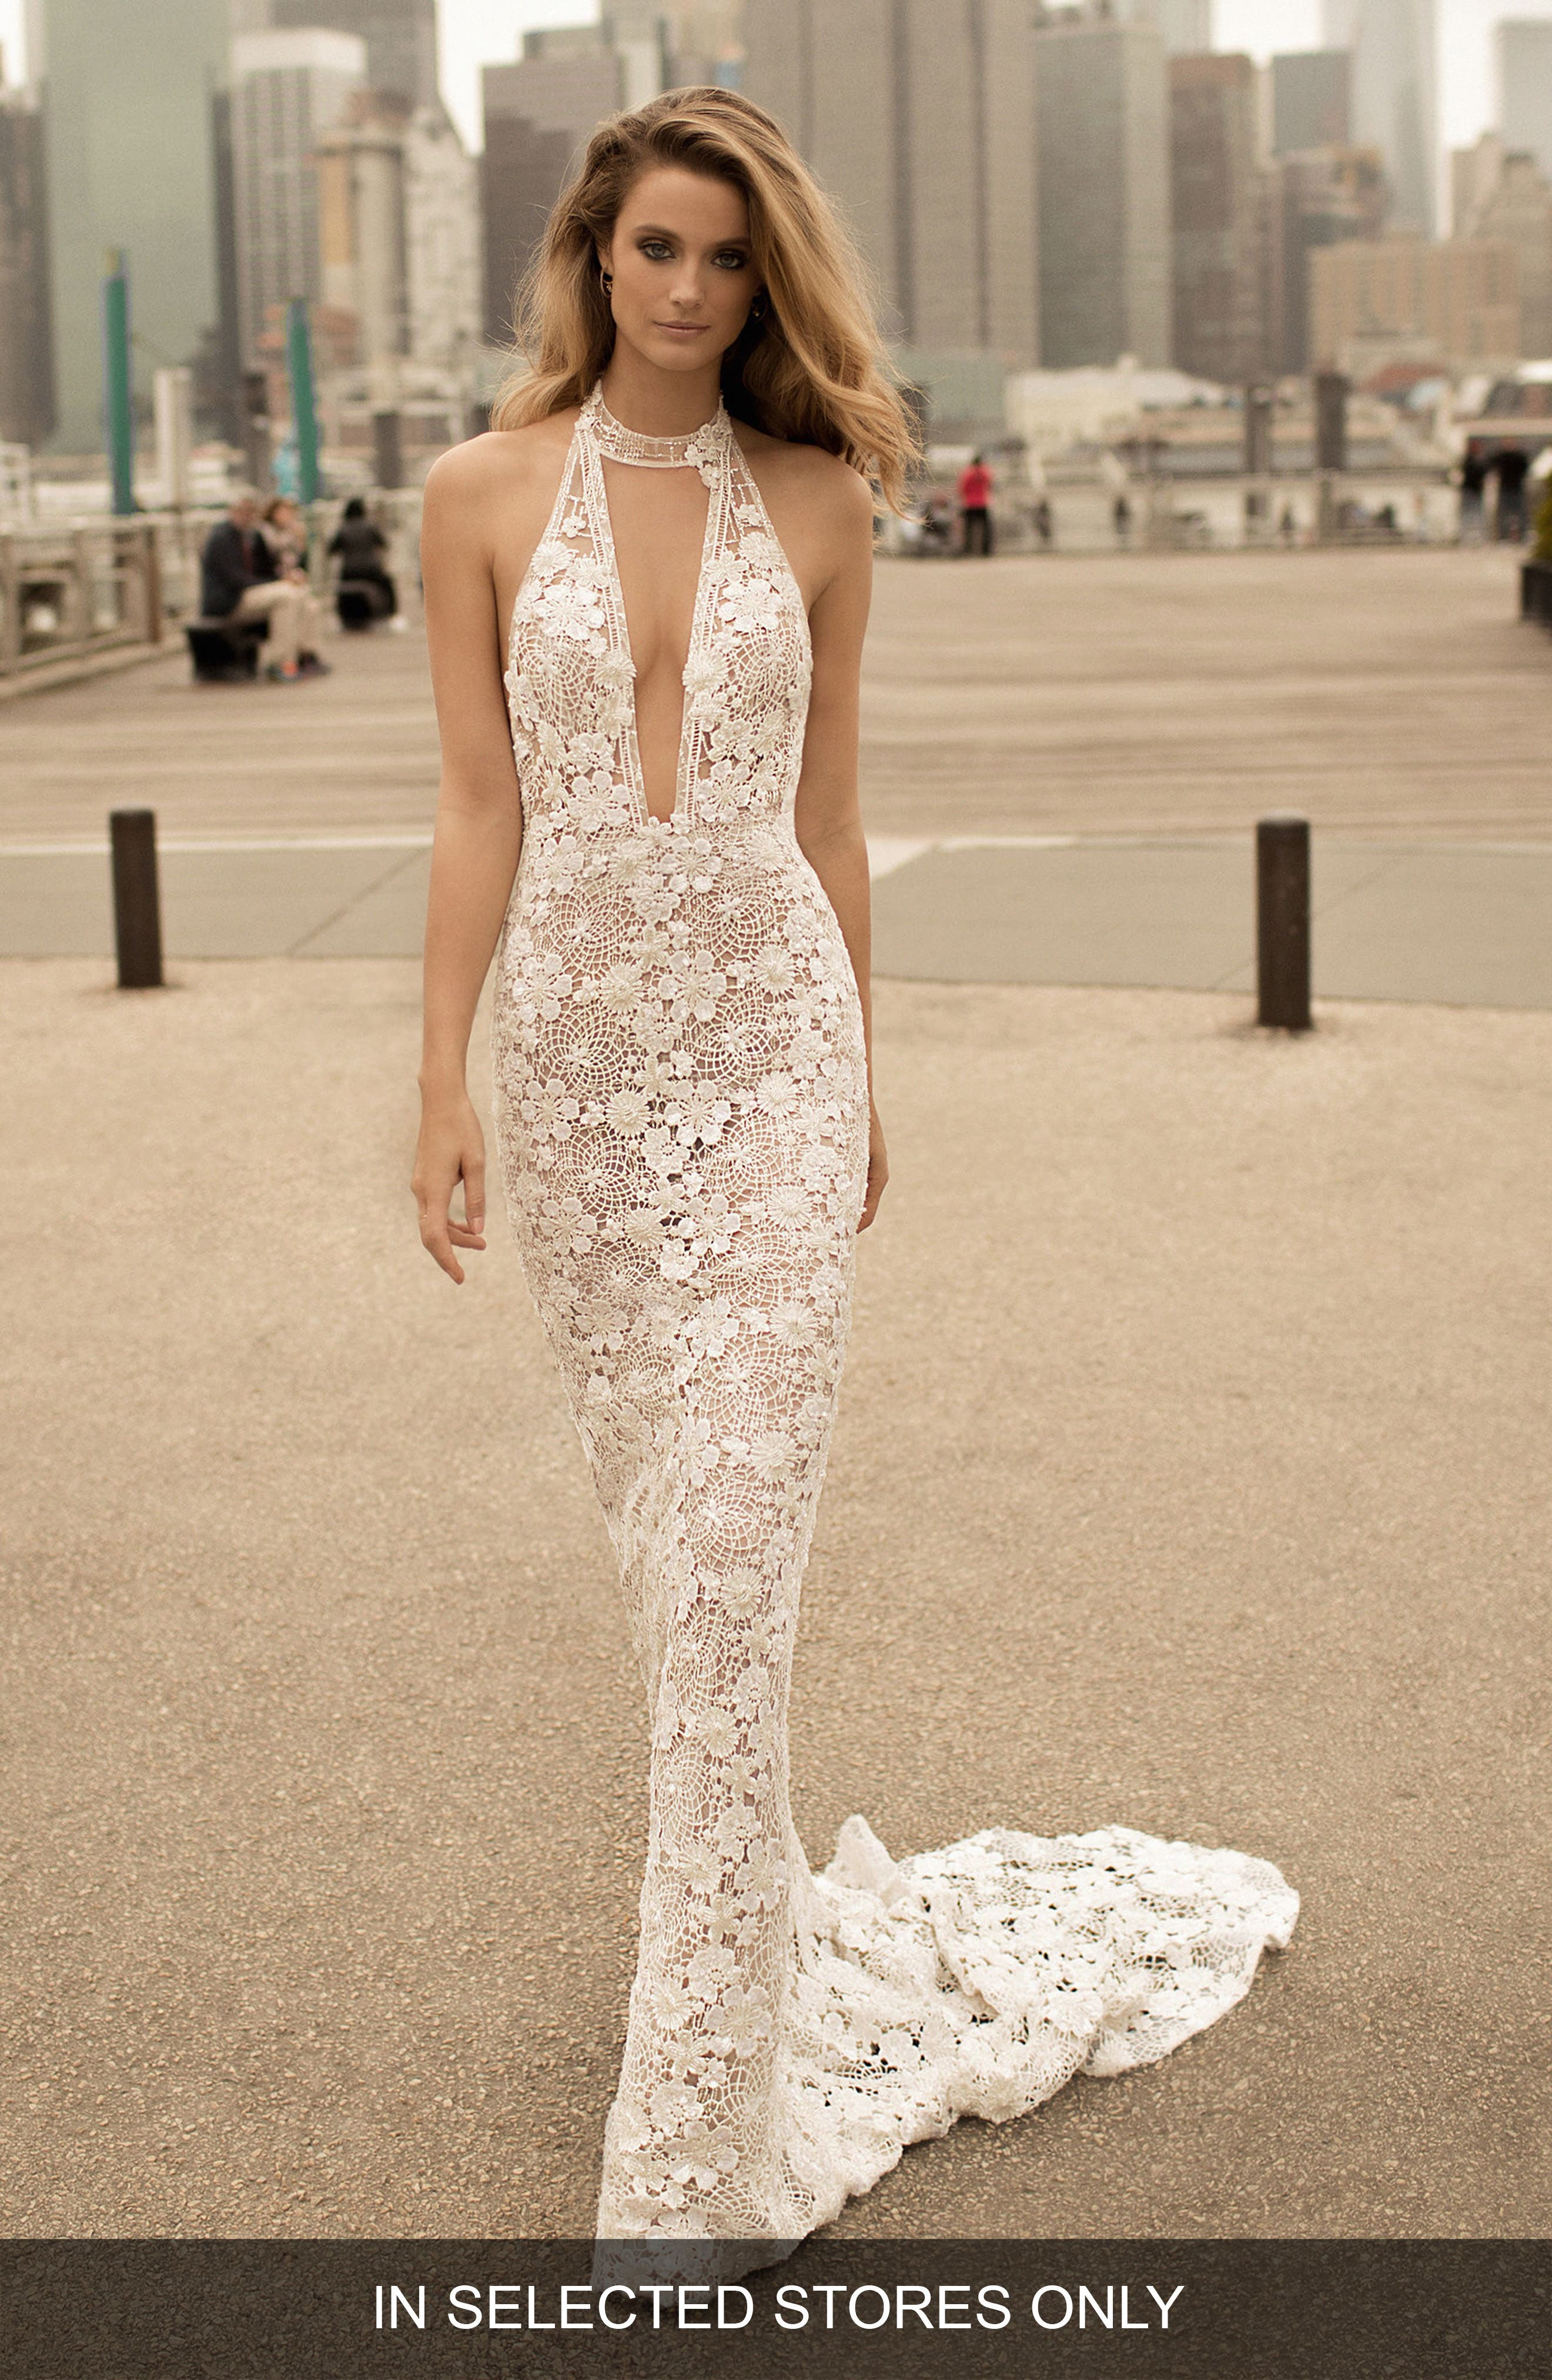 BERTA Choker-Neck Lace Mermaid Gown in Ivory